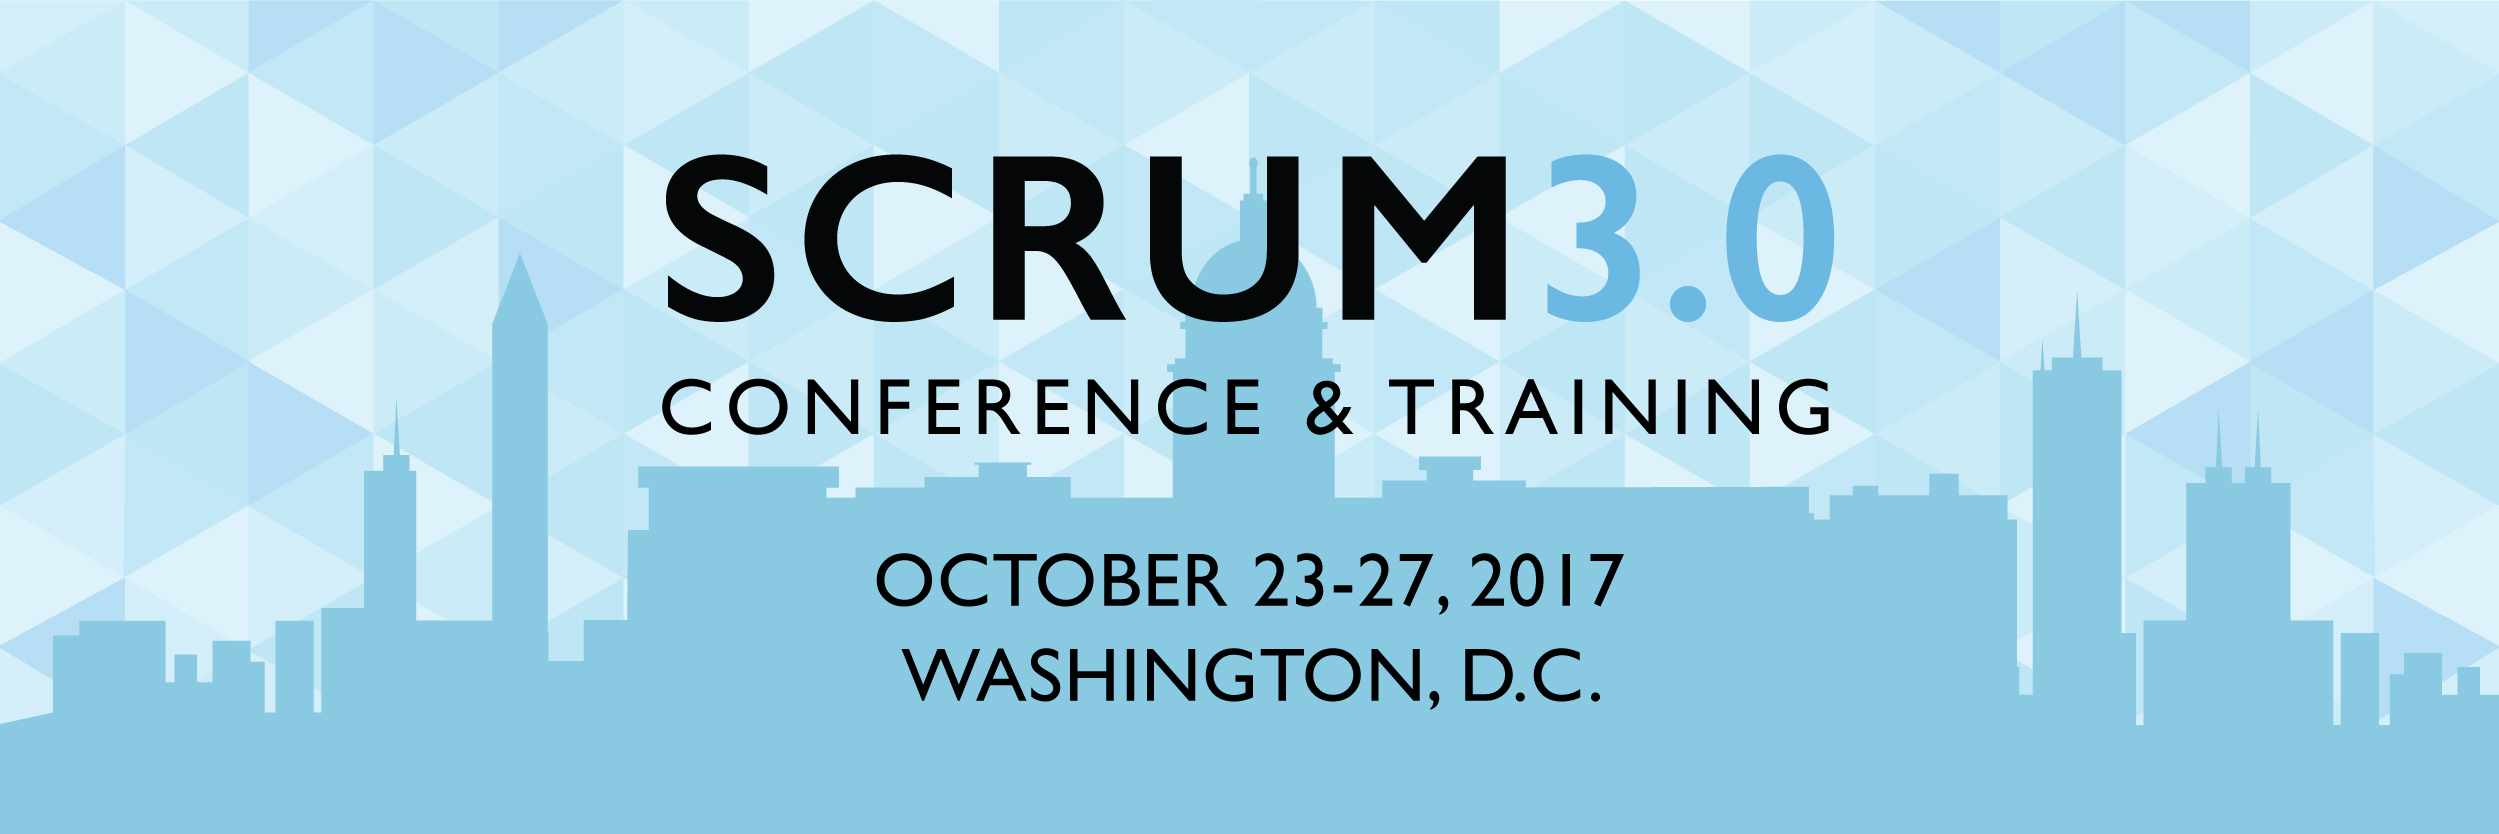 Scrum 3.0 Conference October 2017